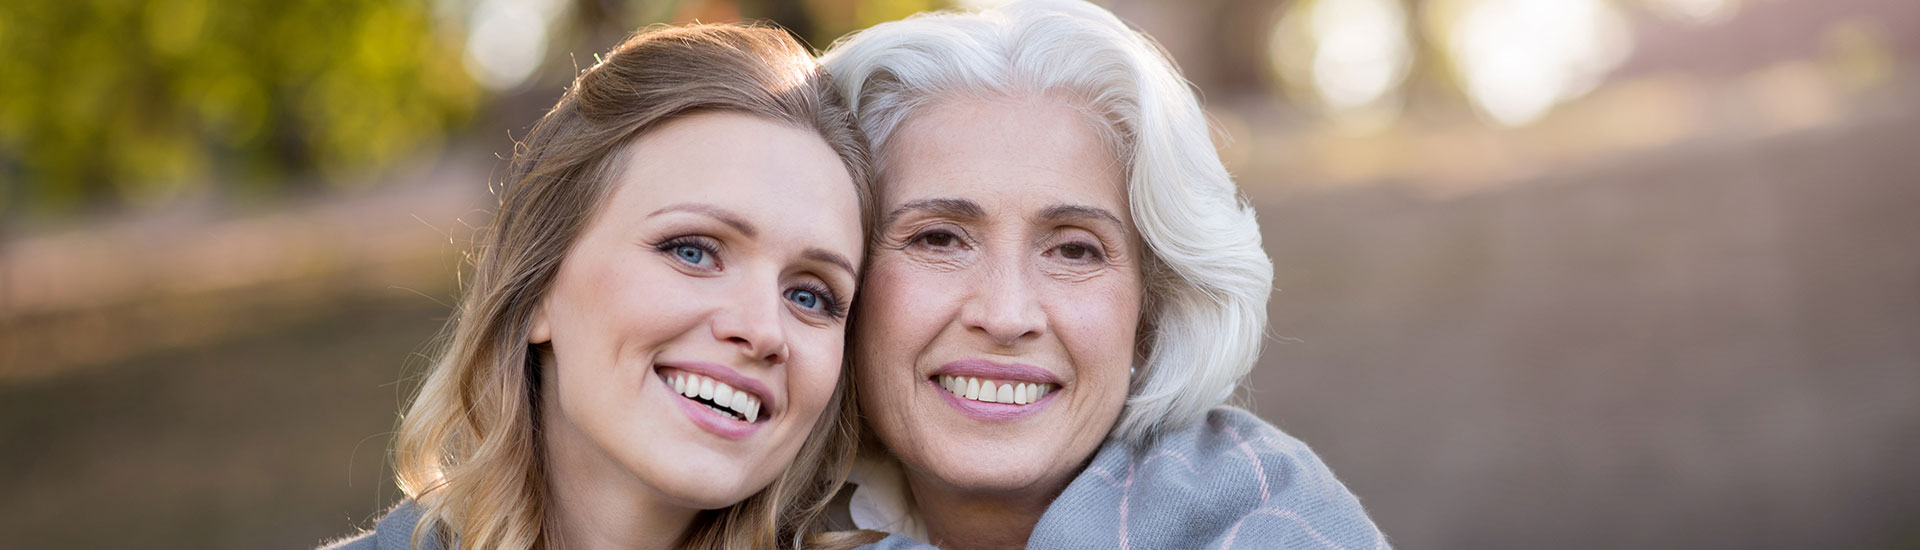 Improve Your Smile with Porcelain Veneers